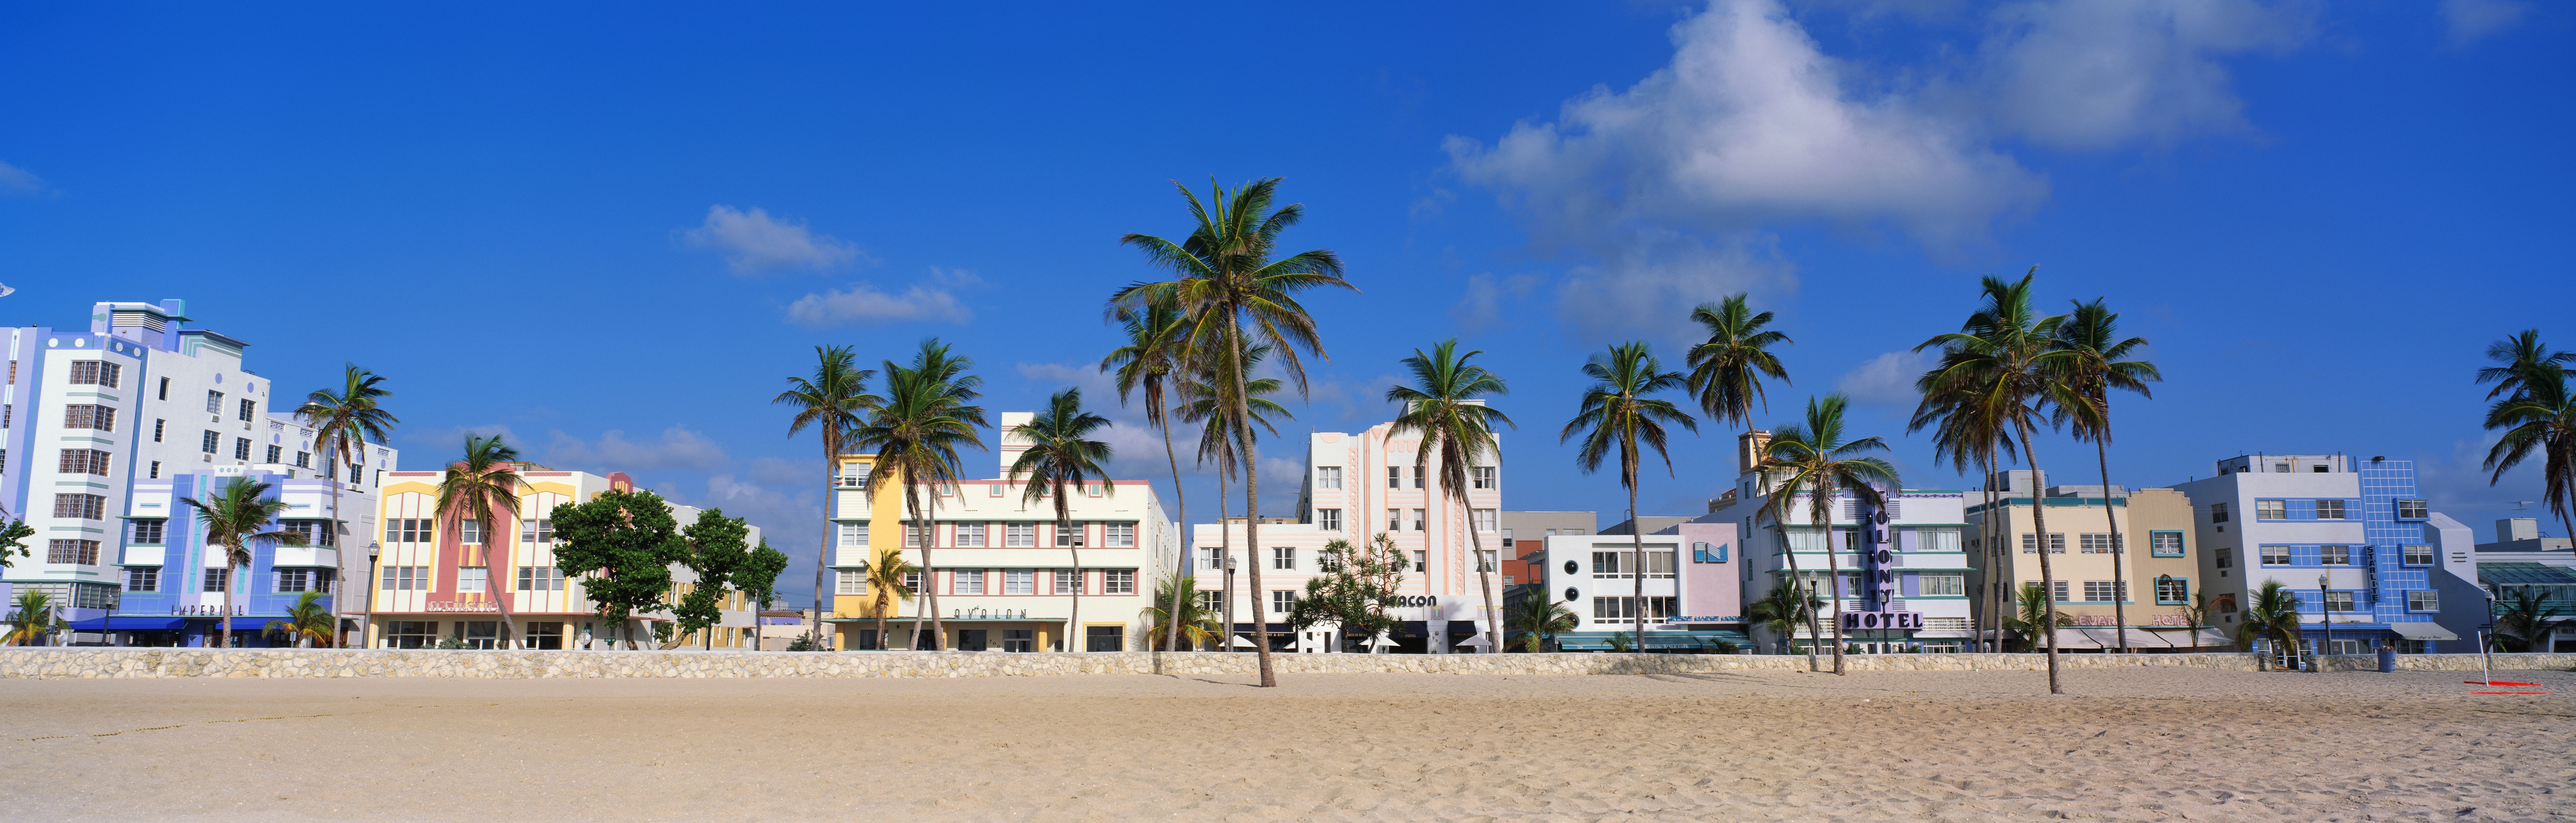 Apartment buildings and palm trees by the beach.